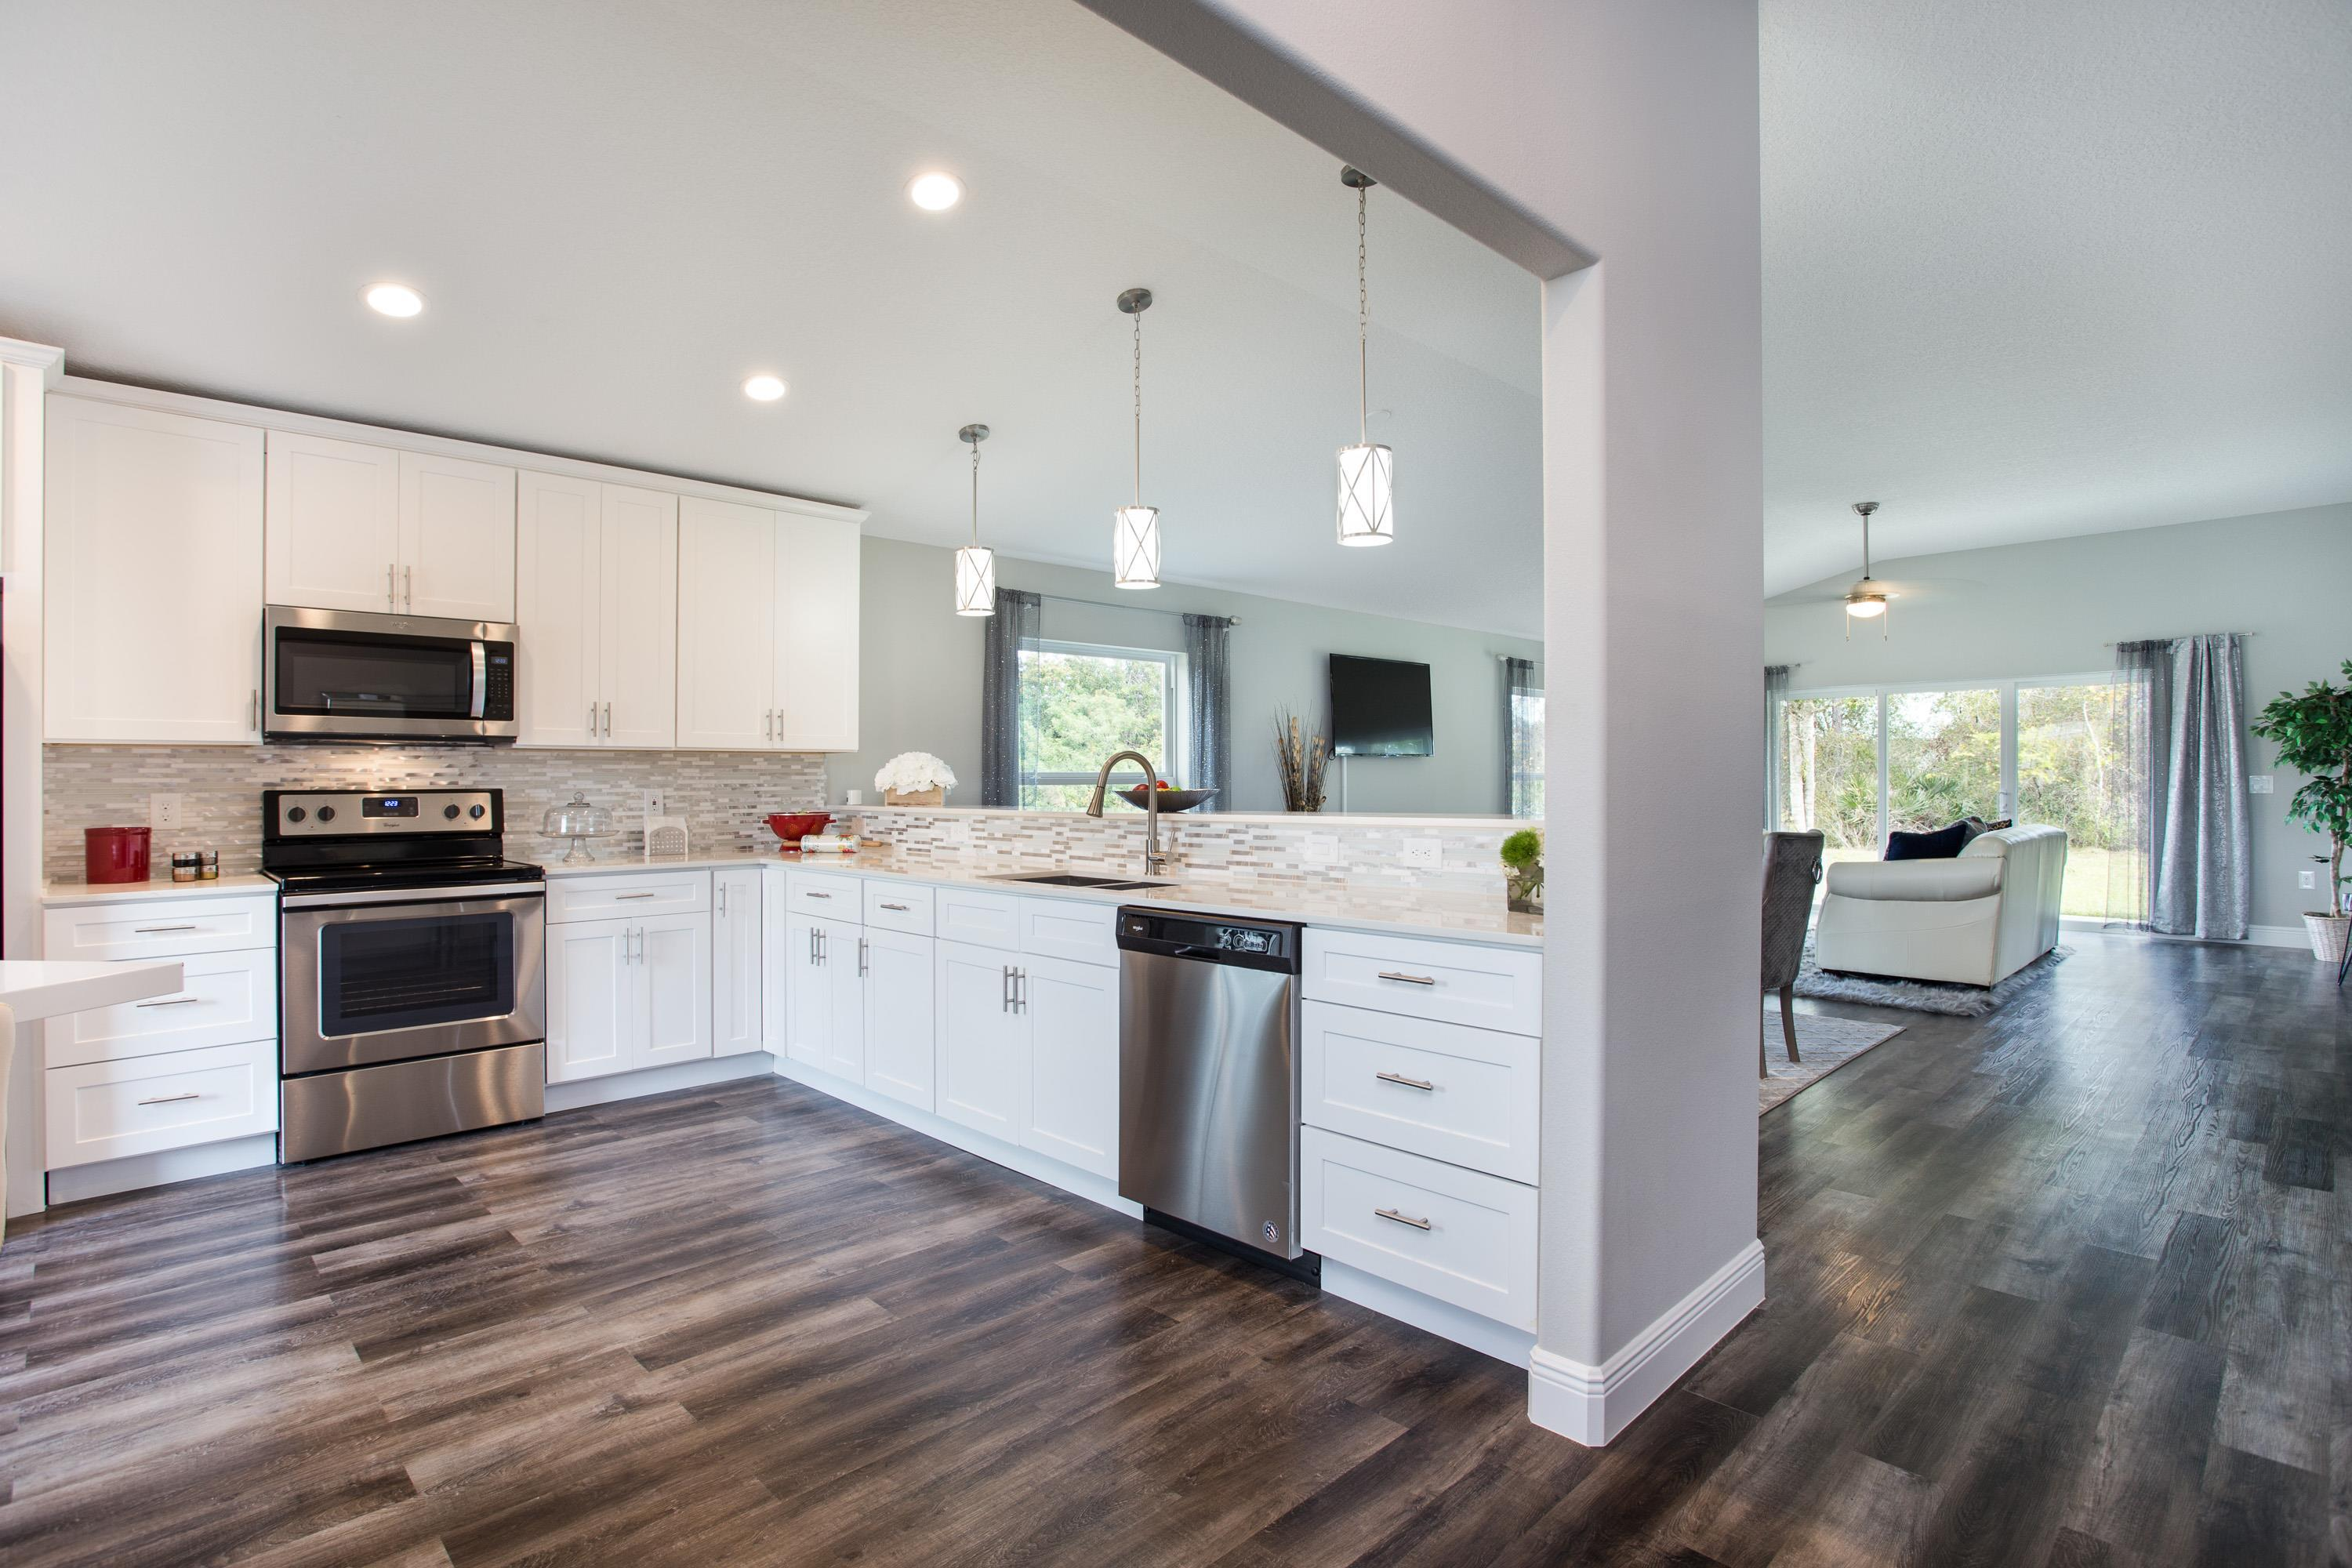 Kitchen featured in the Villa Cerato By Palladio Homes in Fort Myers, FL